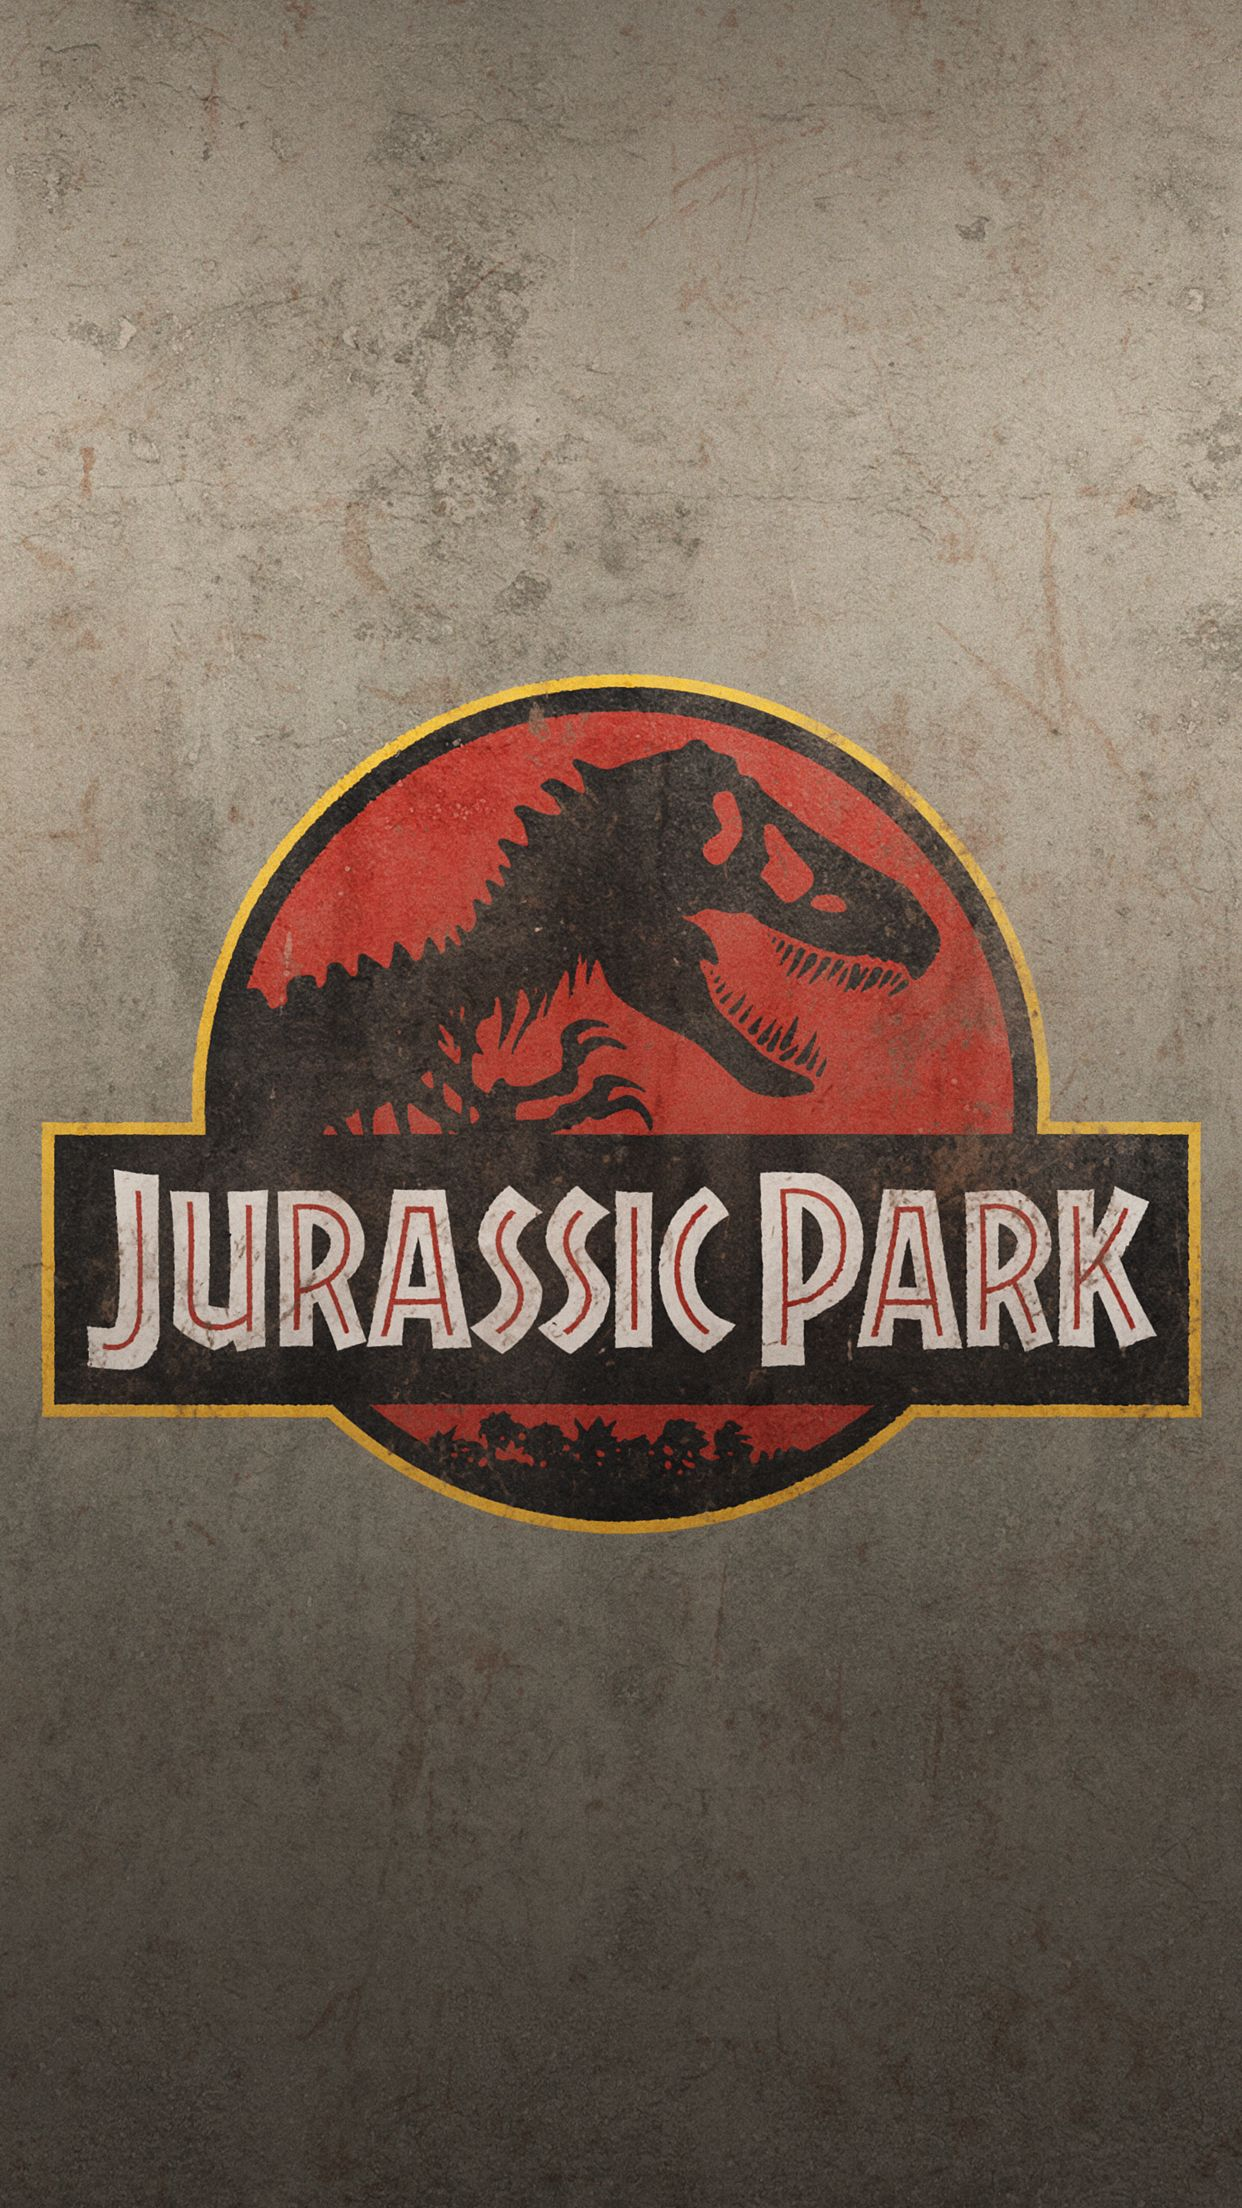 Jurassic park iphone wallpapers google search backgrounds patterns more pinterest jurassic park wallpaper and phone